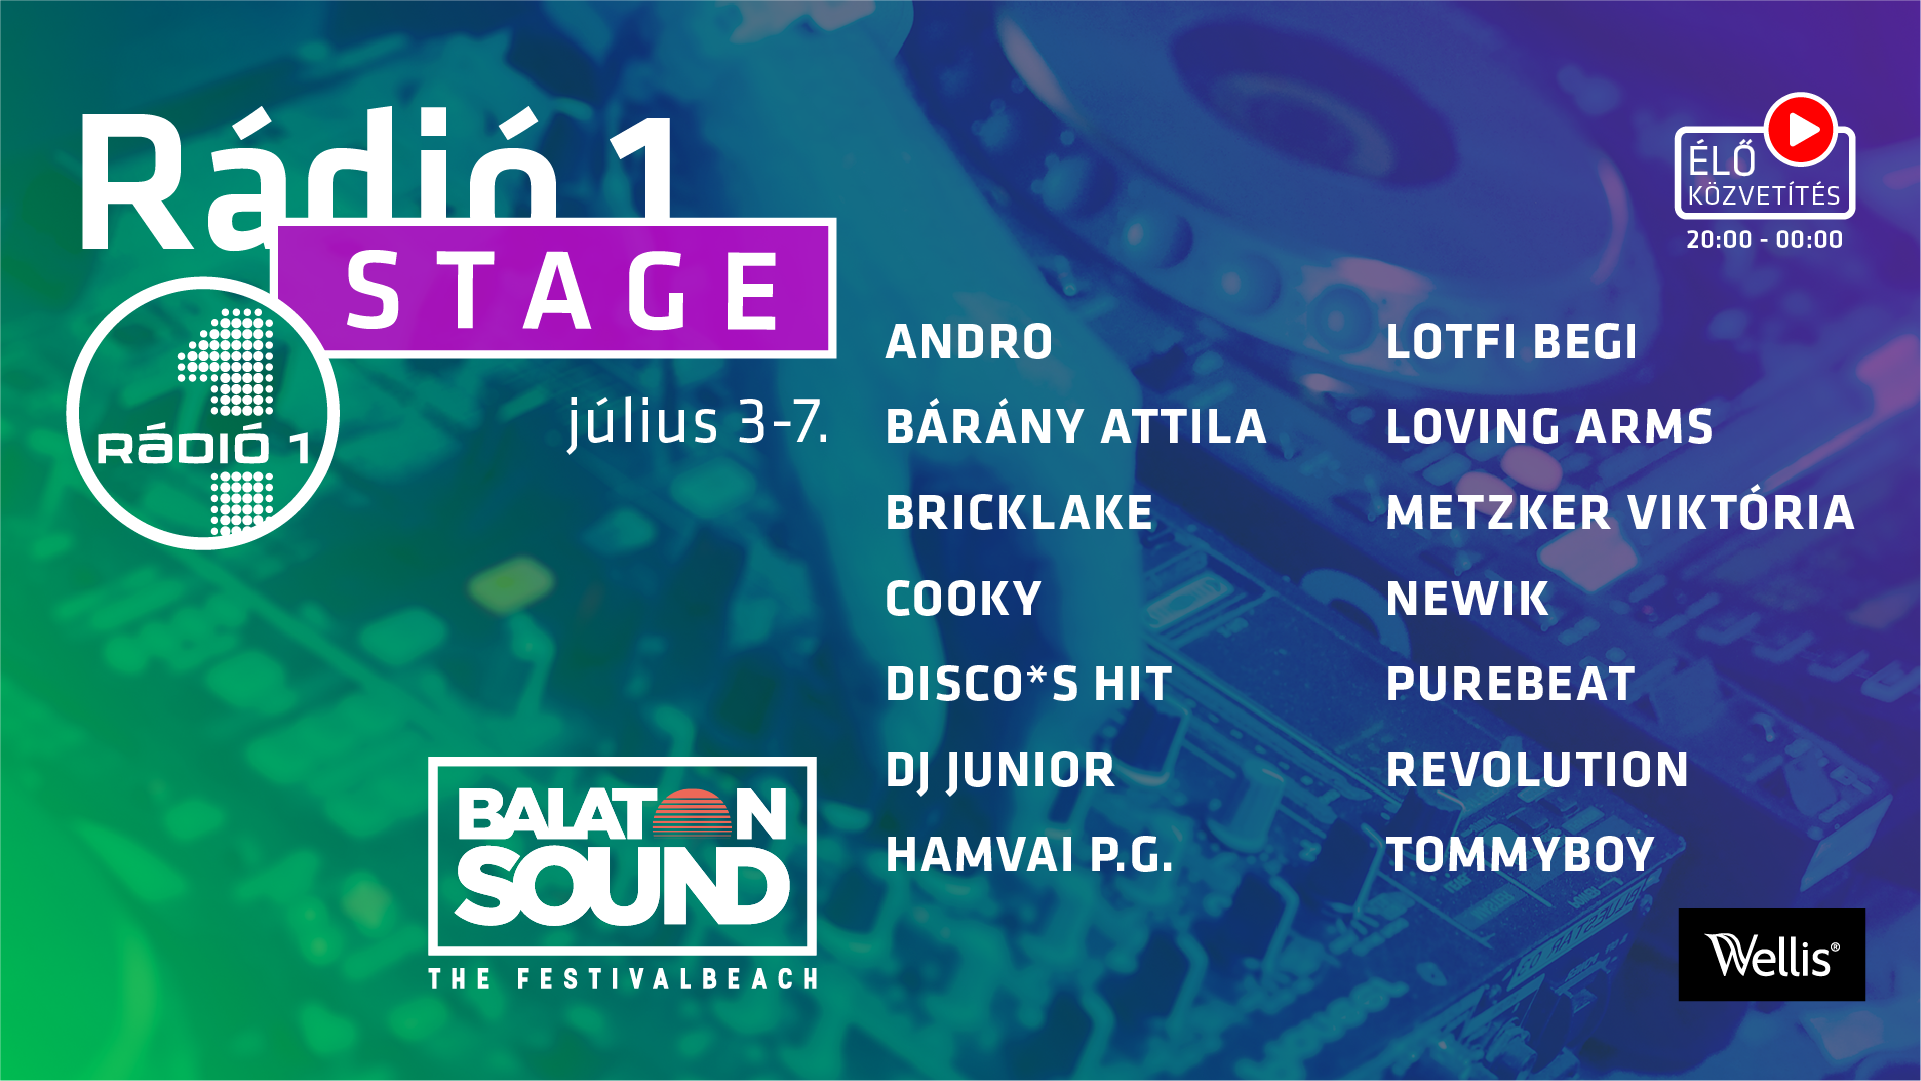 Rádió 1 Balatonsound 2019